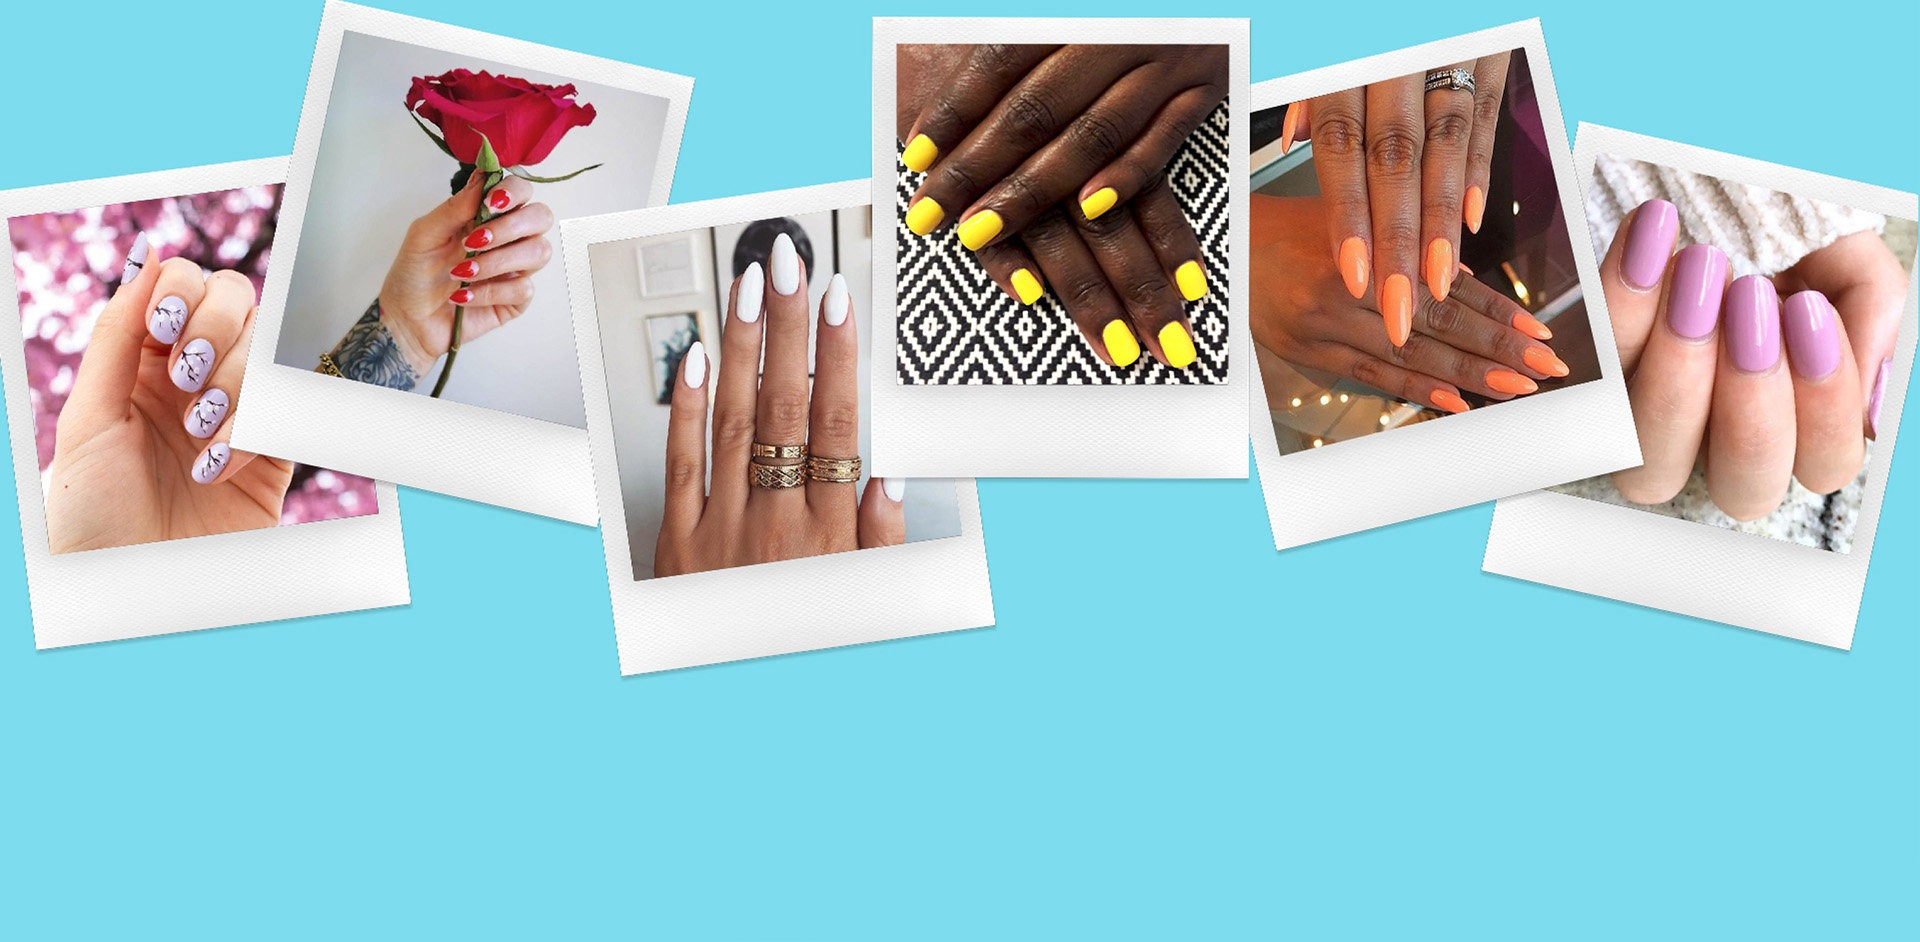 Show us how you nail it!